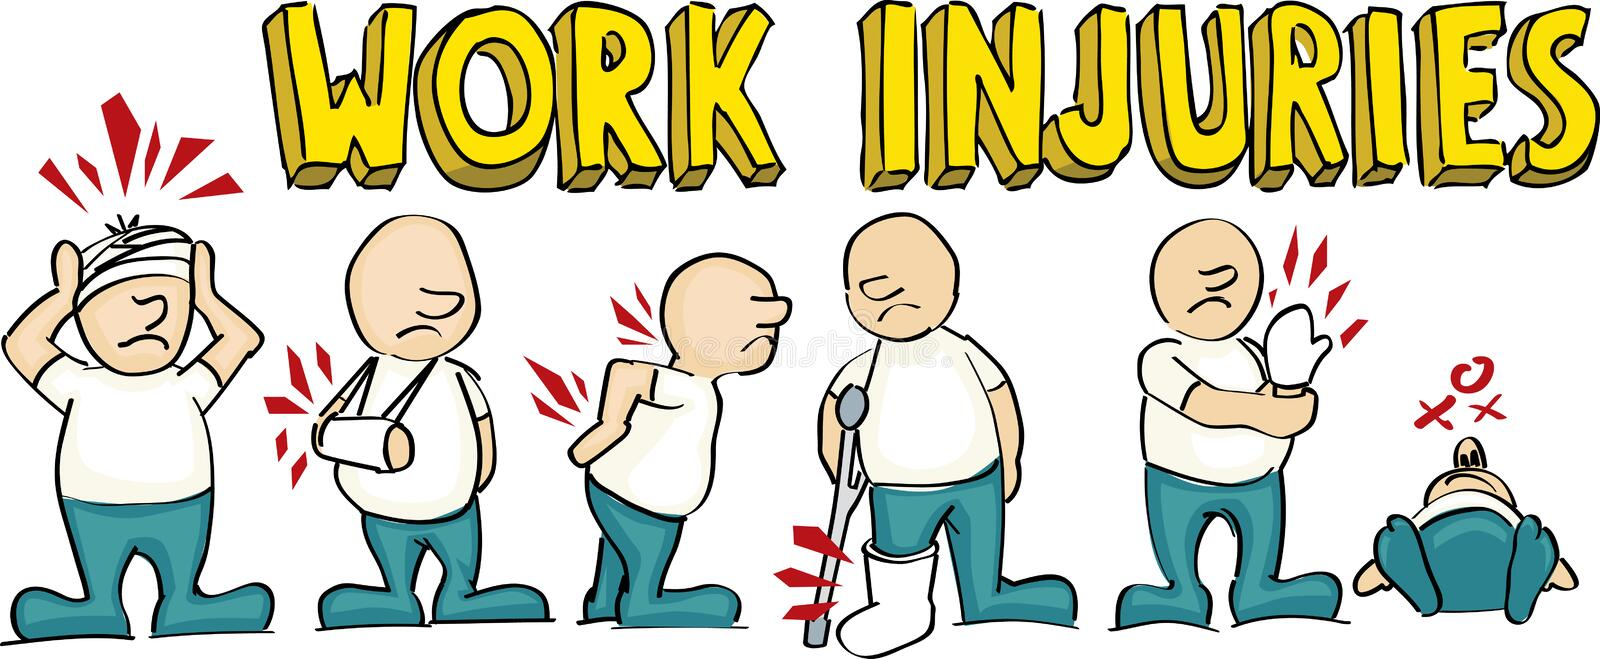 Work injuries royalty free illustration